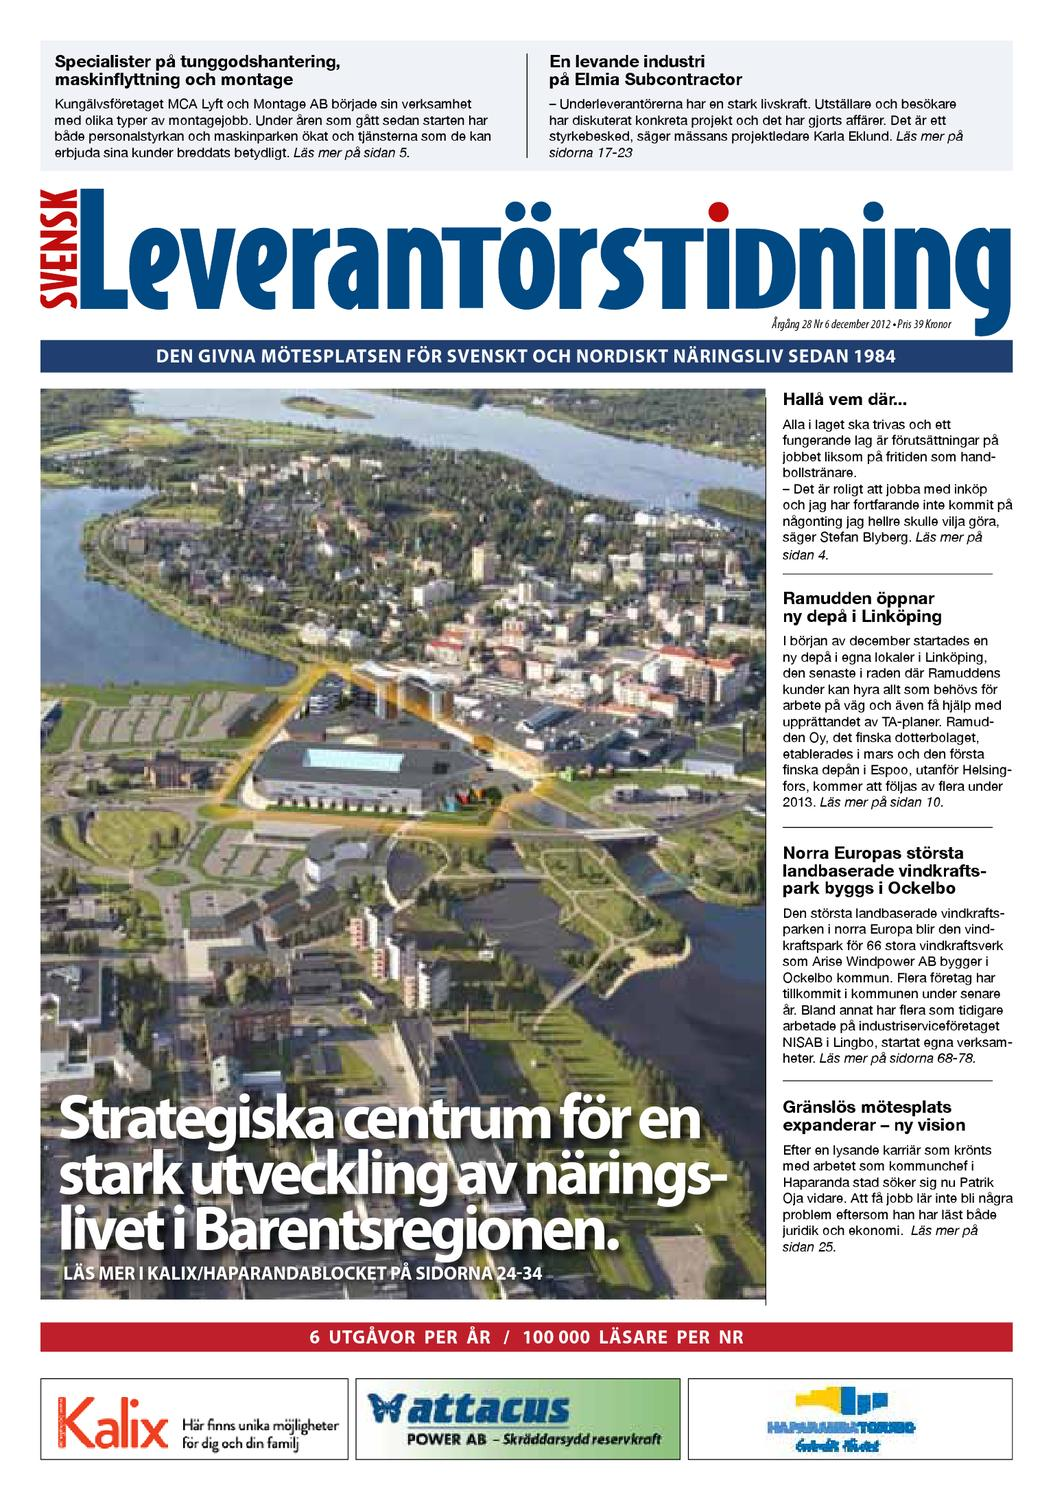 Svensk Leverantörstidning nr-6 2012 by Hexanova Media Group AB - issuu abc88eb8b99f2